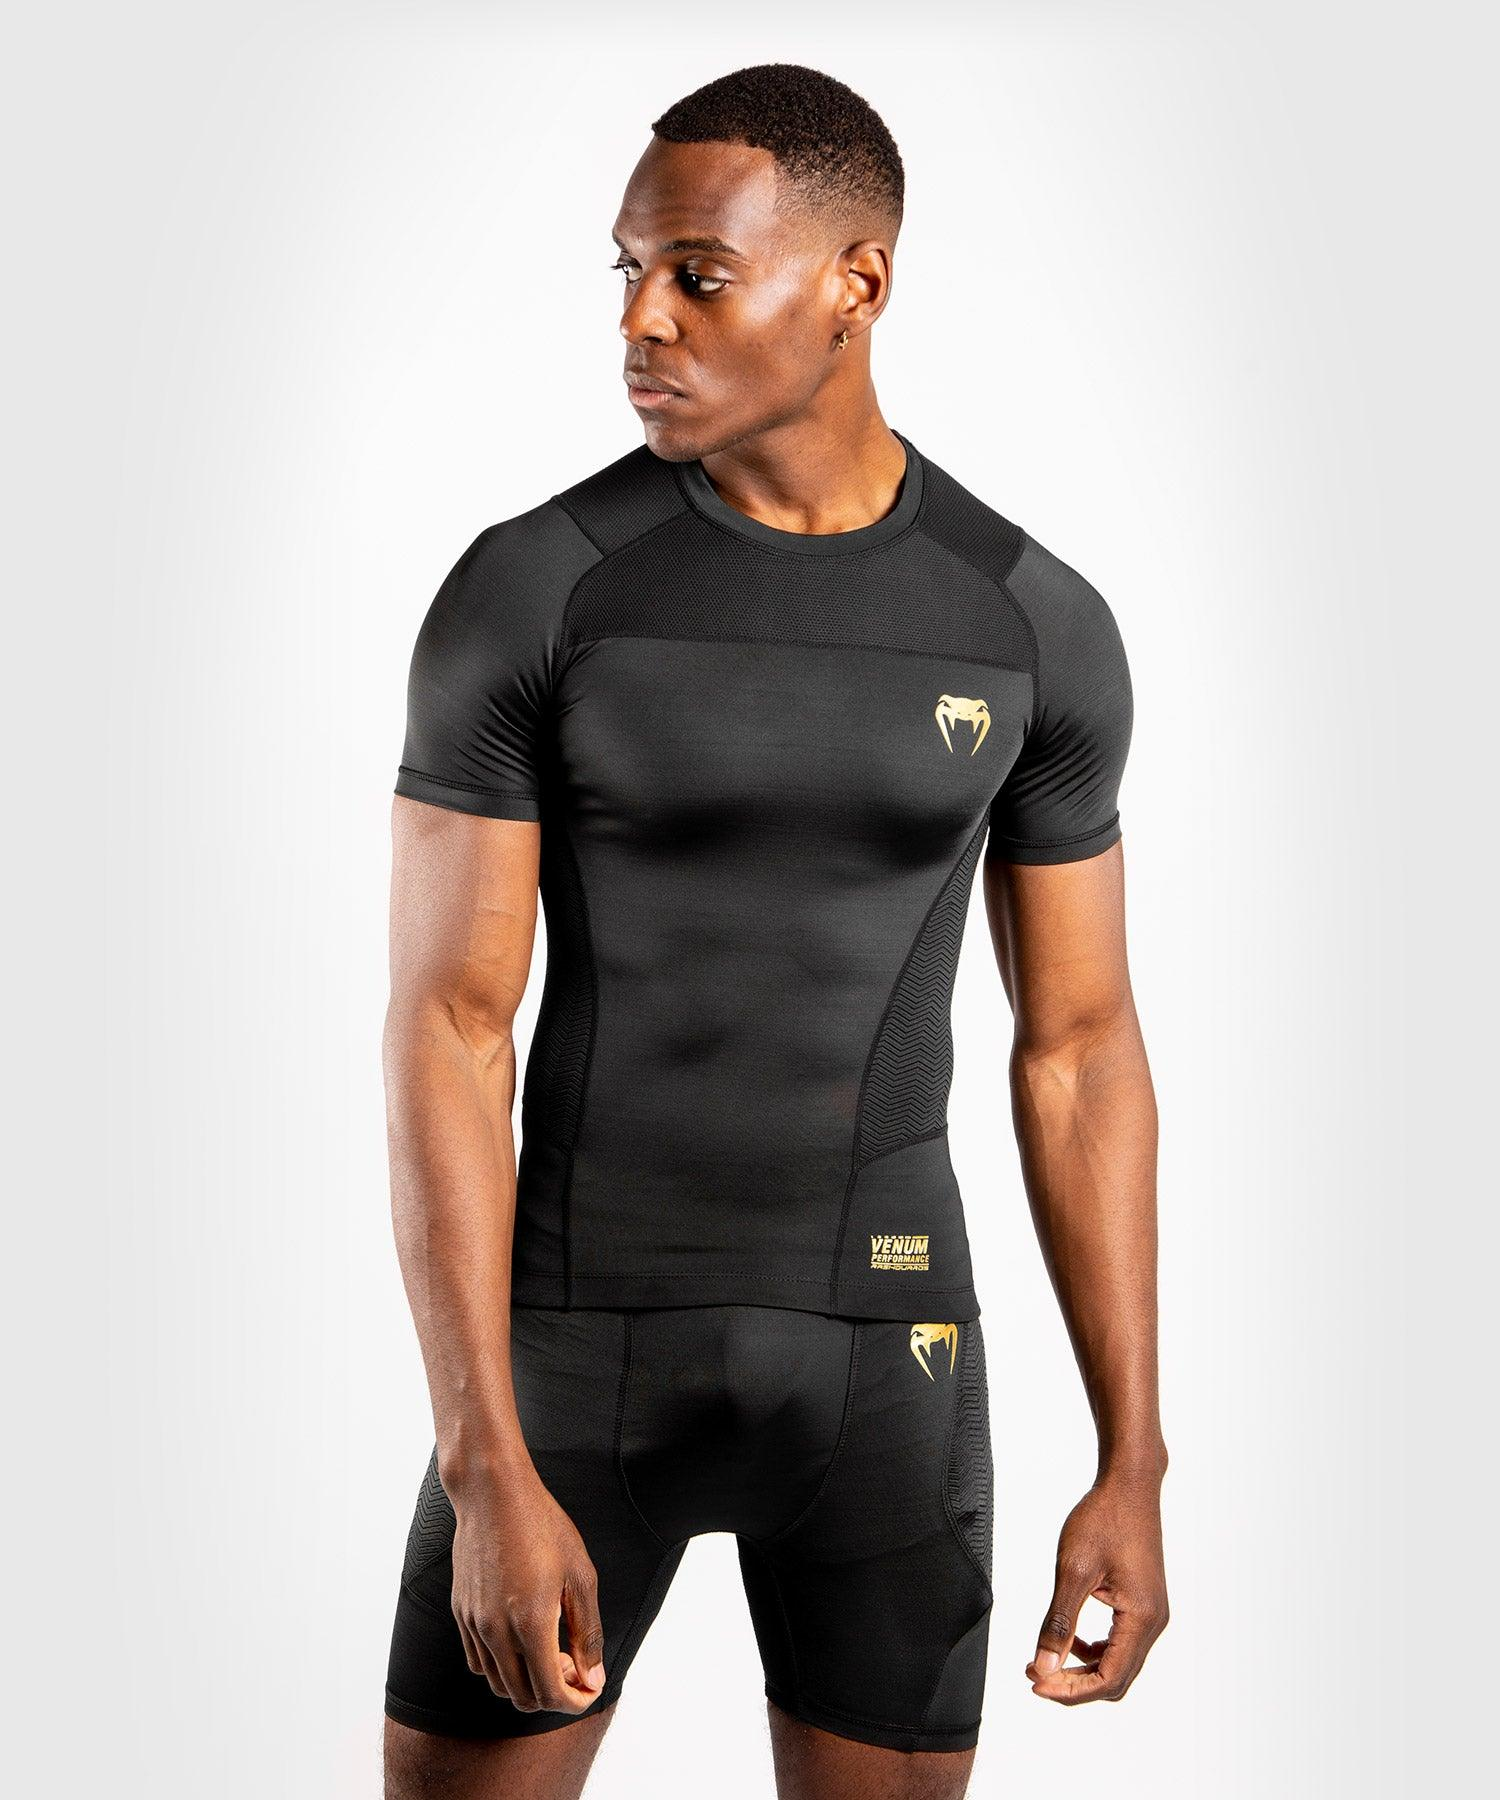 Venum G-Fit Rashguard - Short Sleeves - Black/Gold picture 1